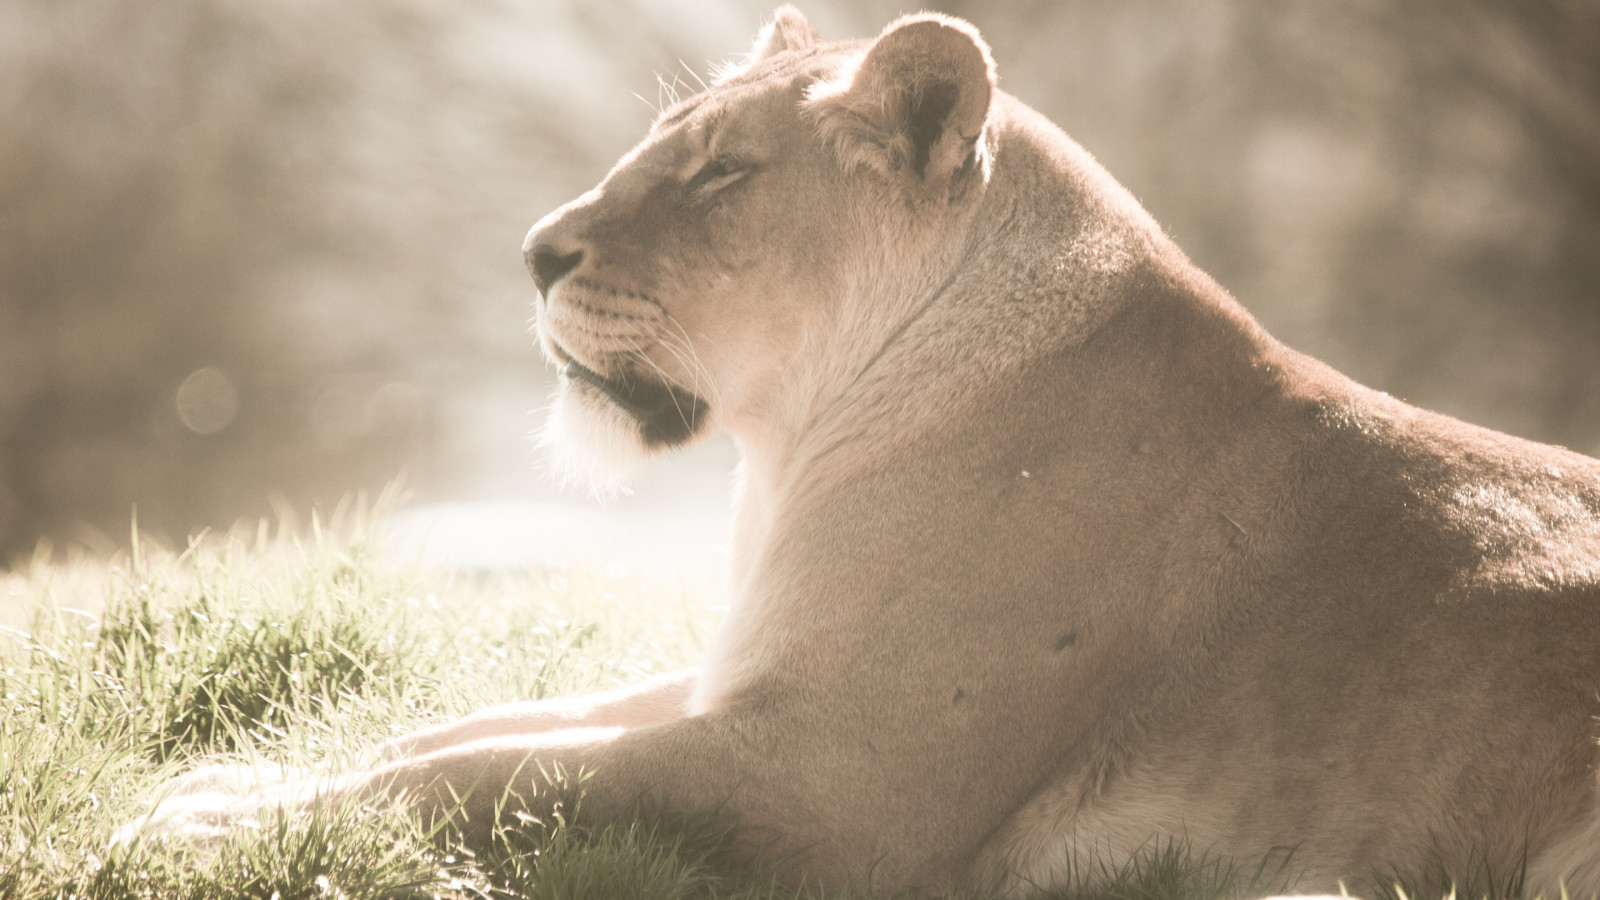 Lioness at Whipsnade Zoo | 1600x900 wallpaper